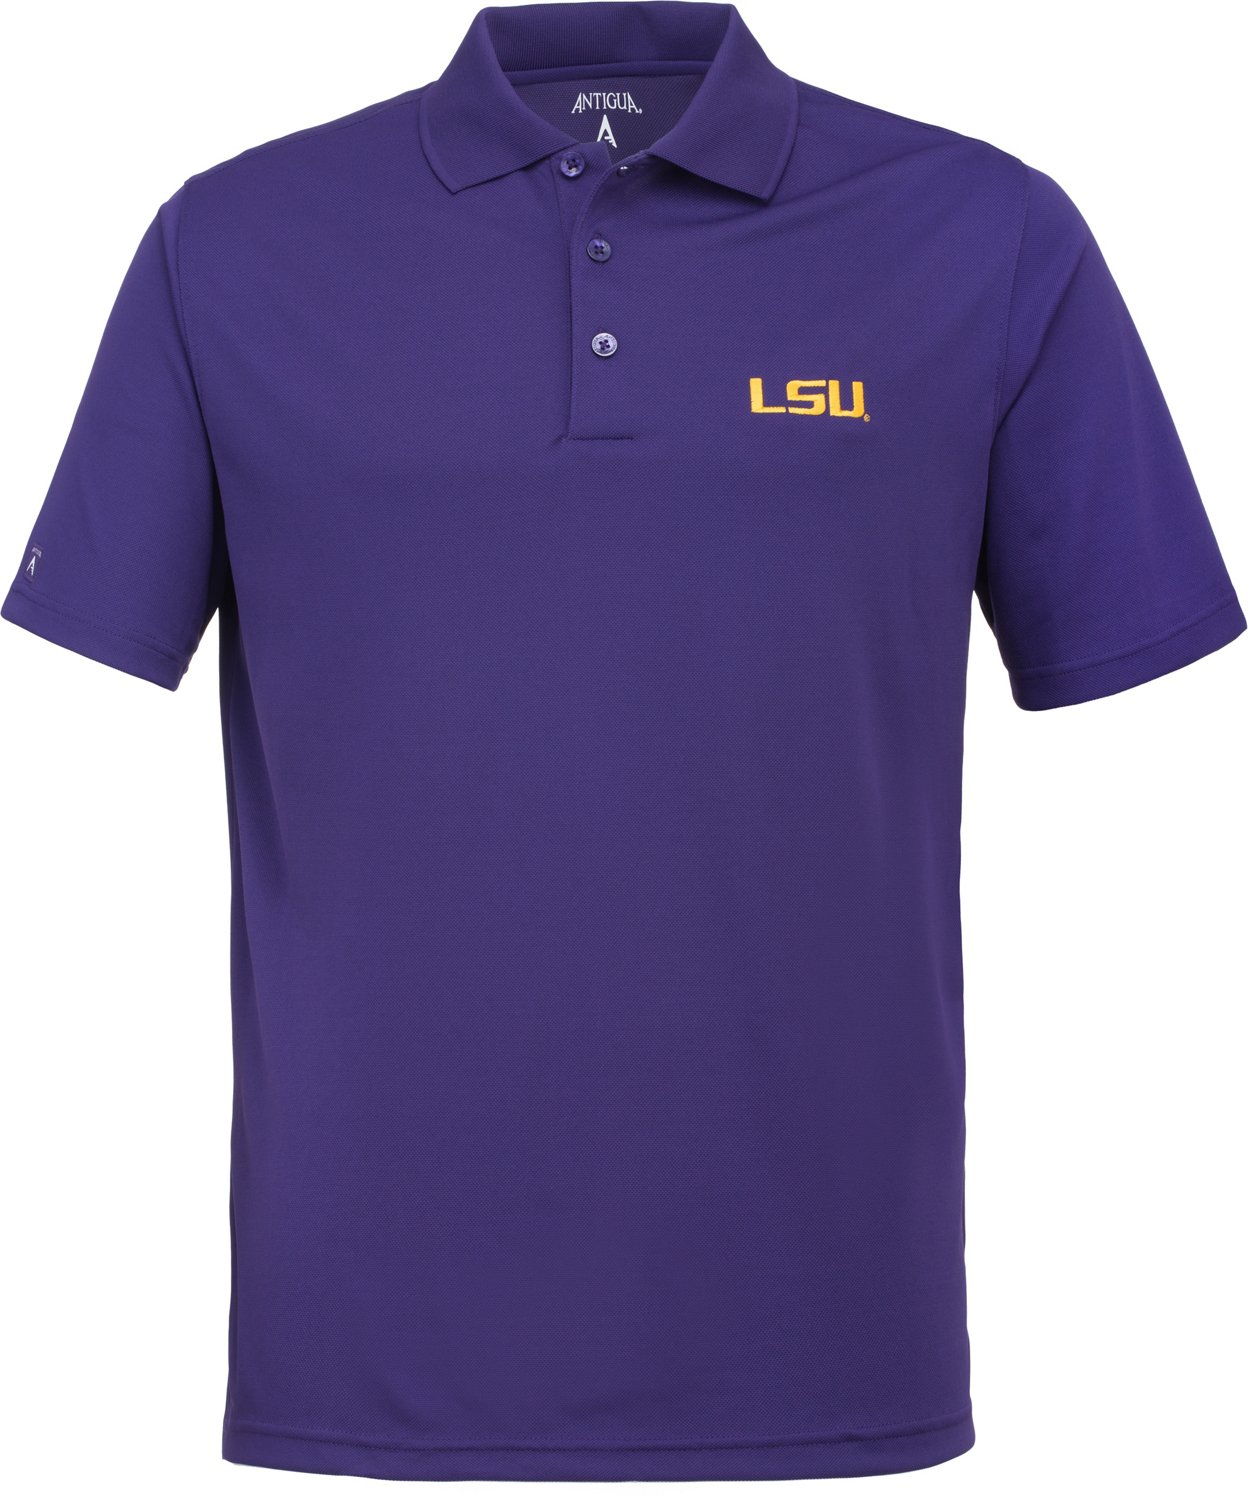 more photos 61b62 5499f Display product reviews for Antigua Men s Louisiana State University  Xtra-Lite Polo Shirt